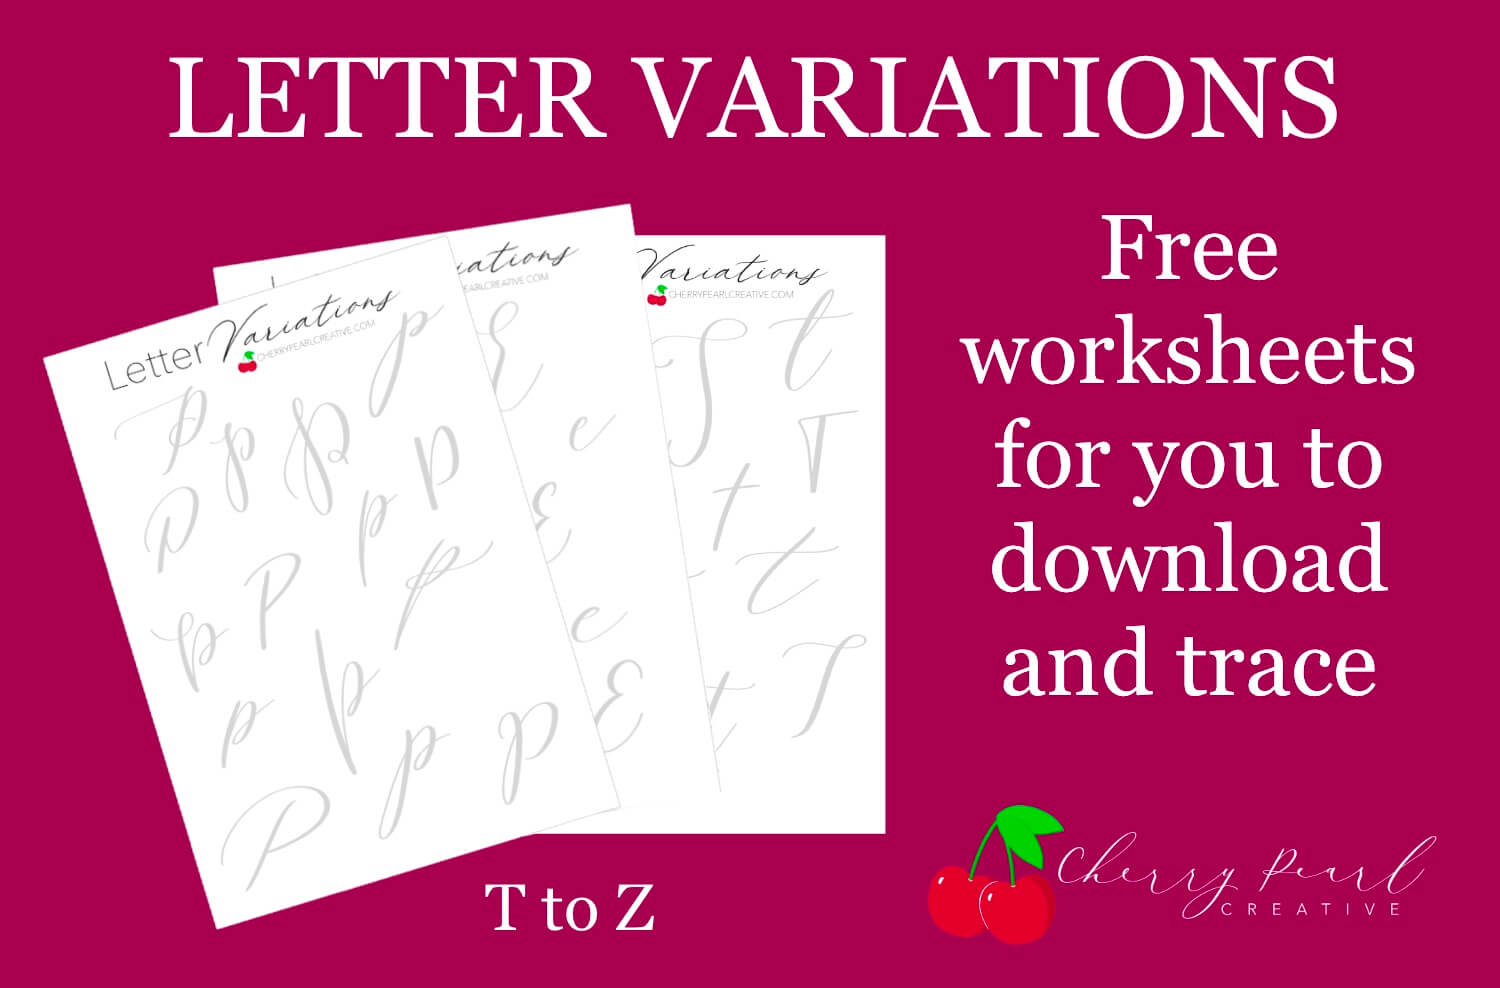 New Alphabet Variation Worksheets Ready For You! (T-Z)